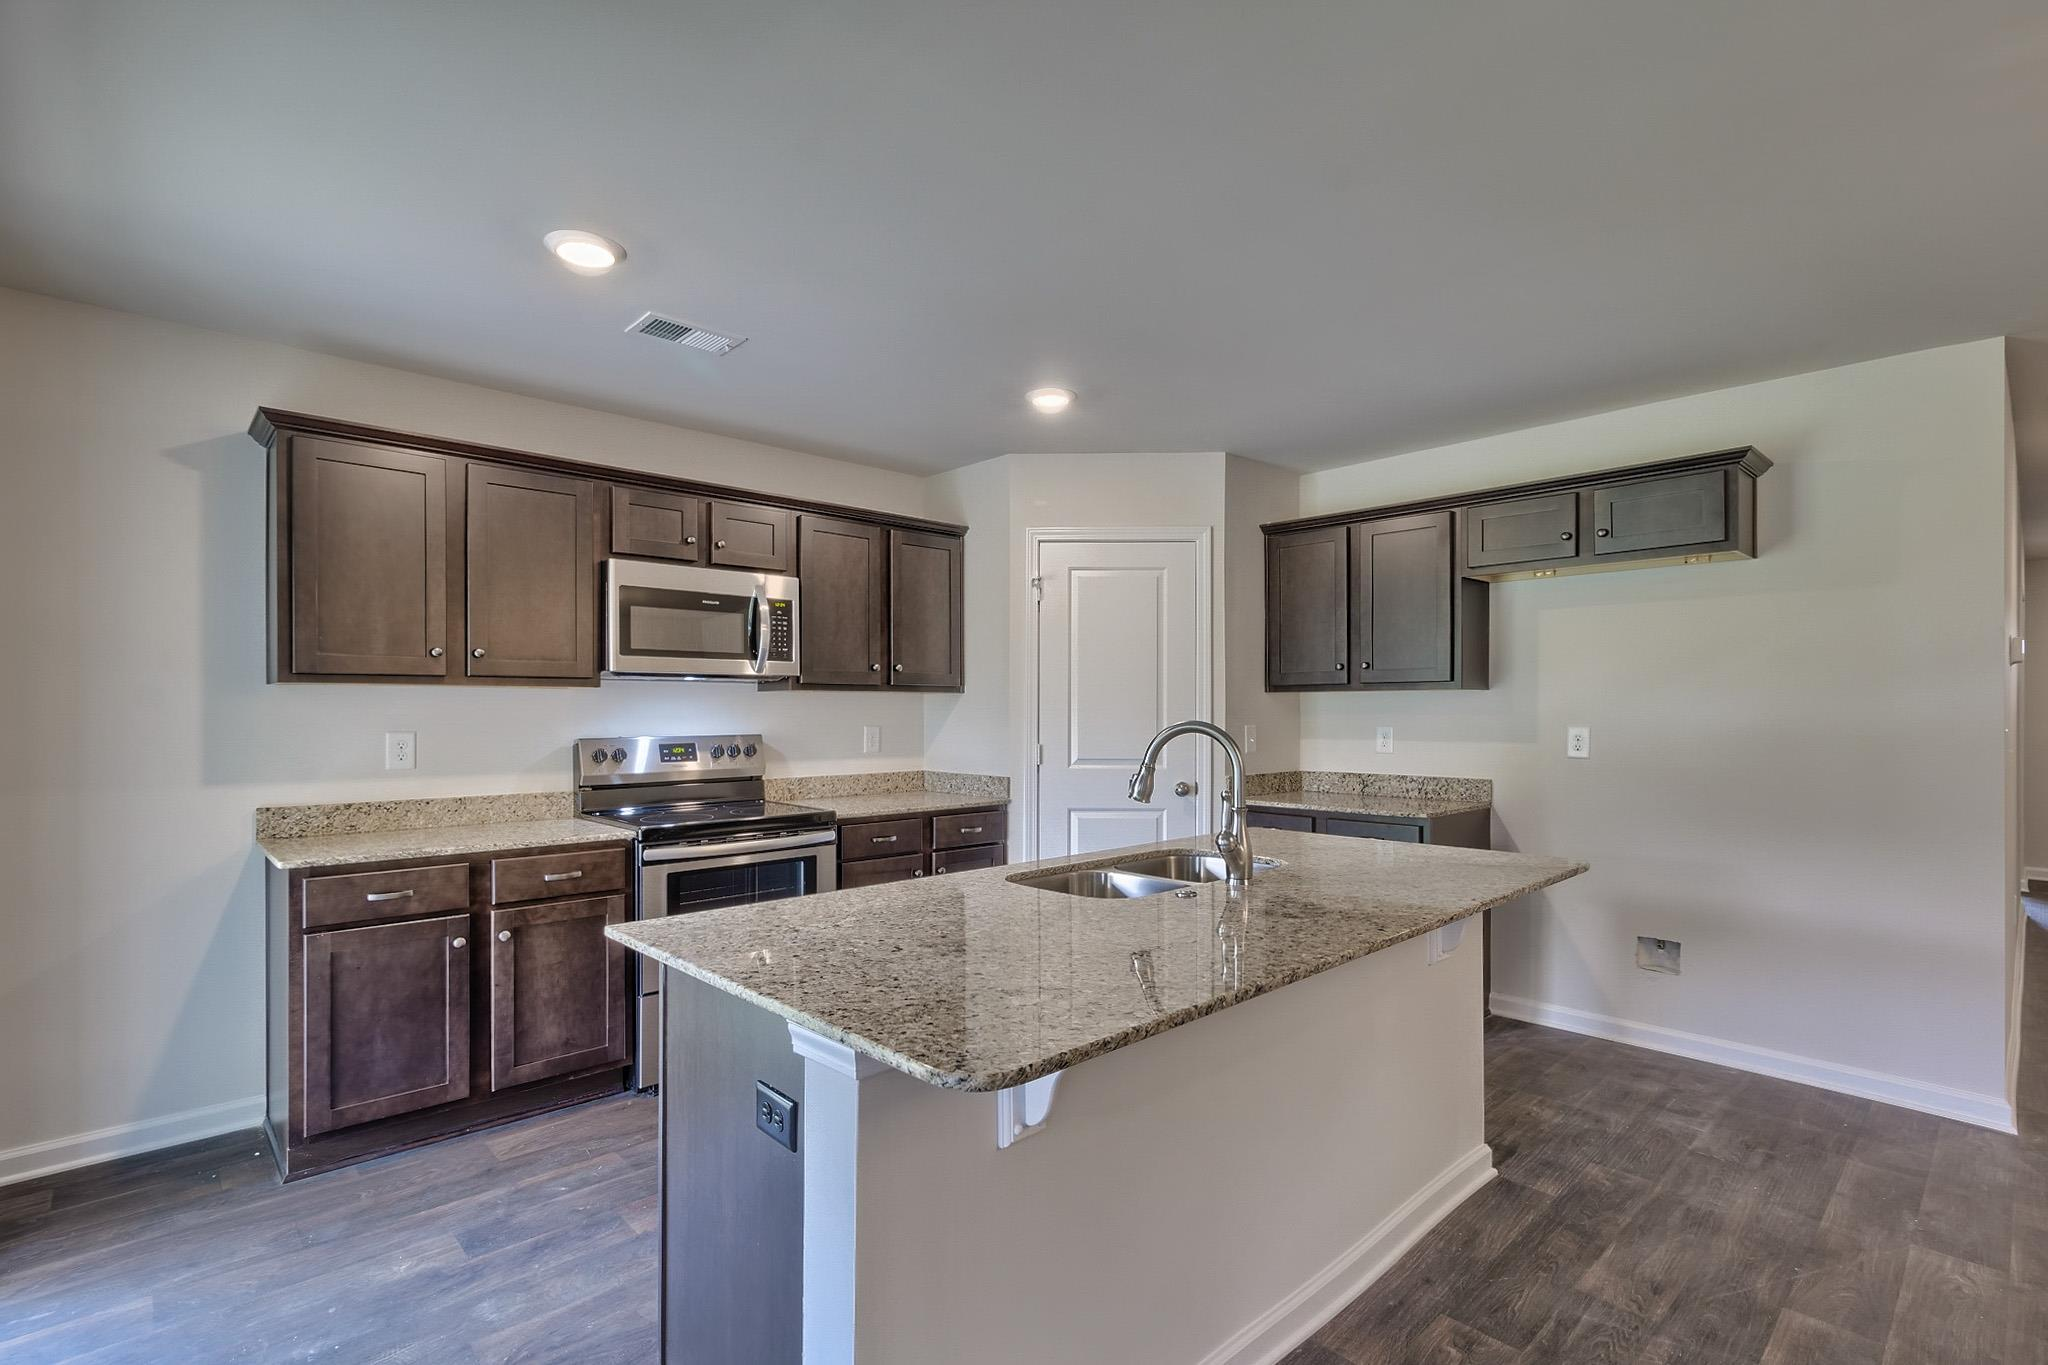 Kitchen featured in the Magnolia By McGuinn Hybrid Homes in Columbia, SC